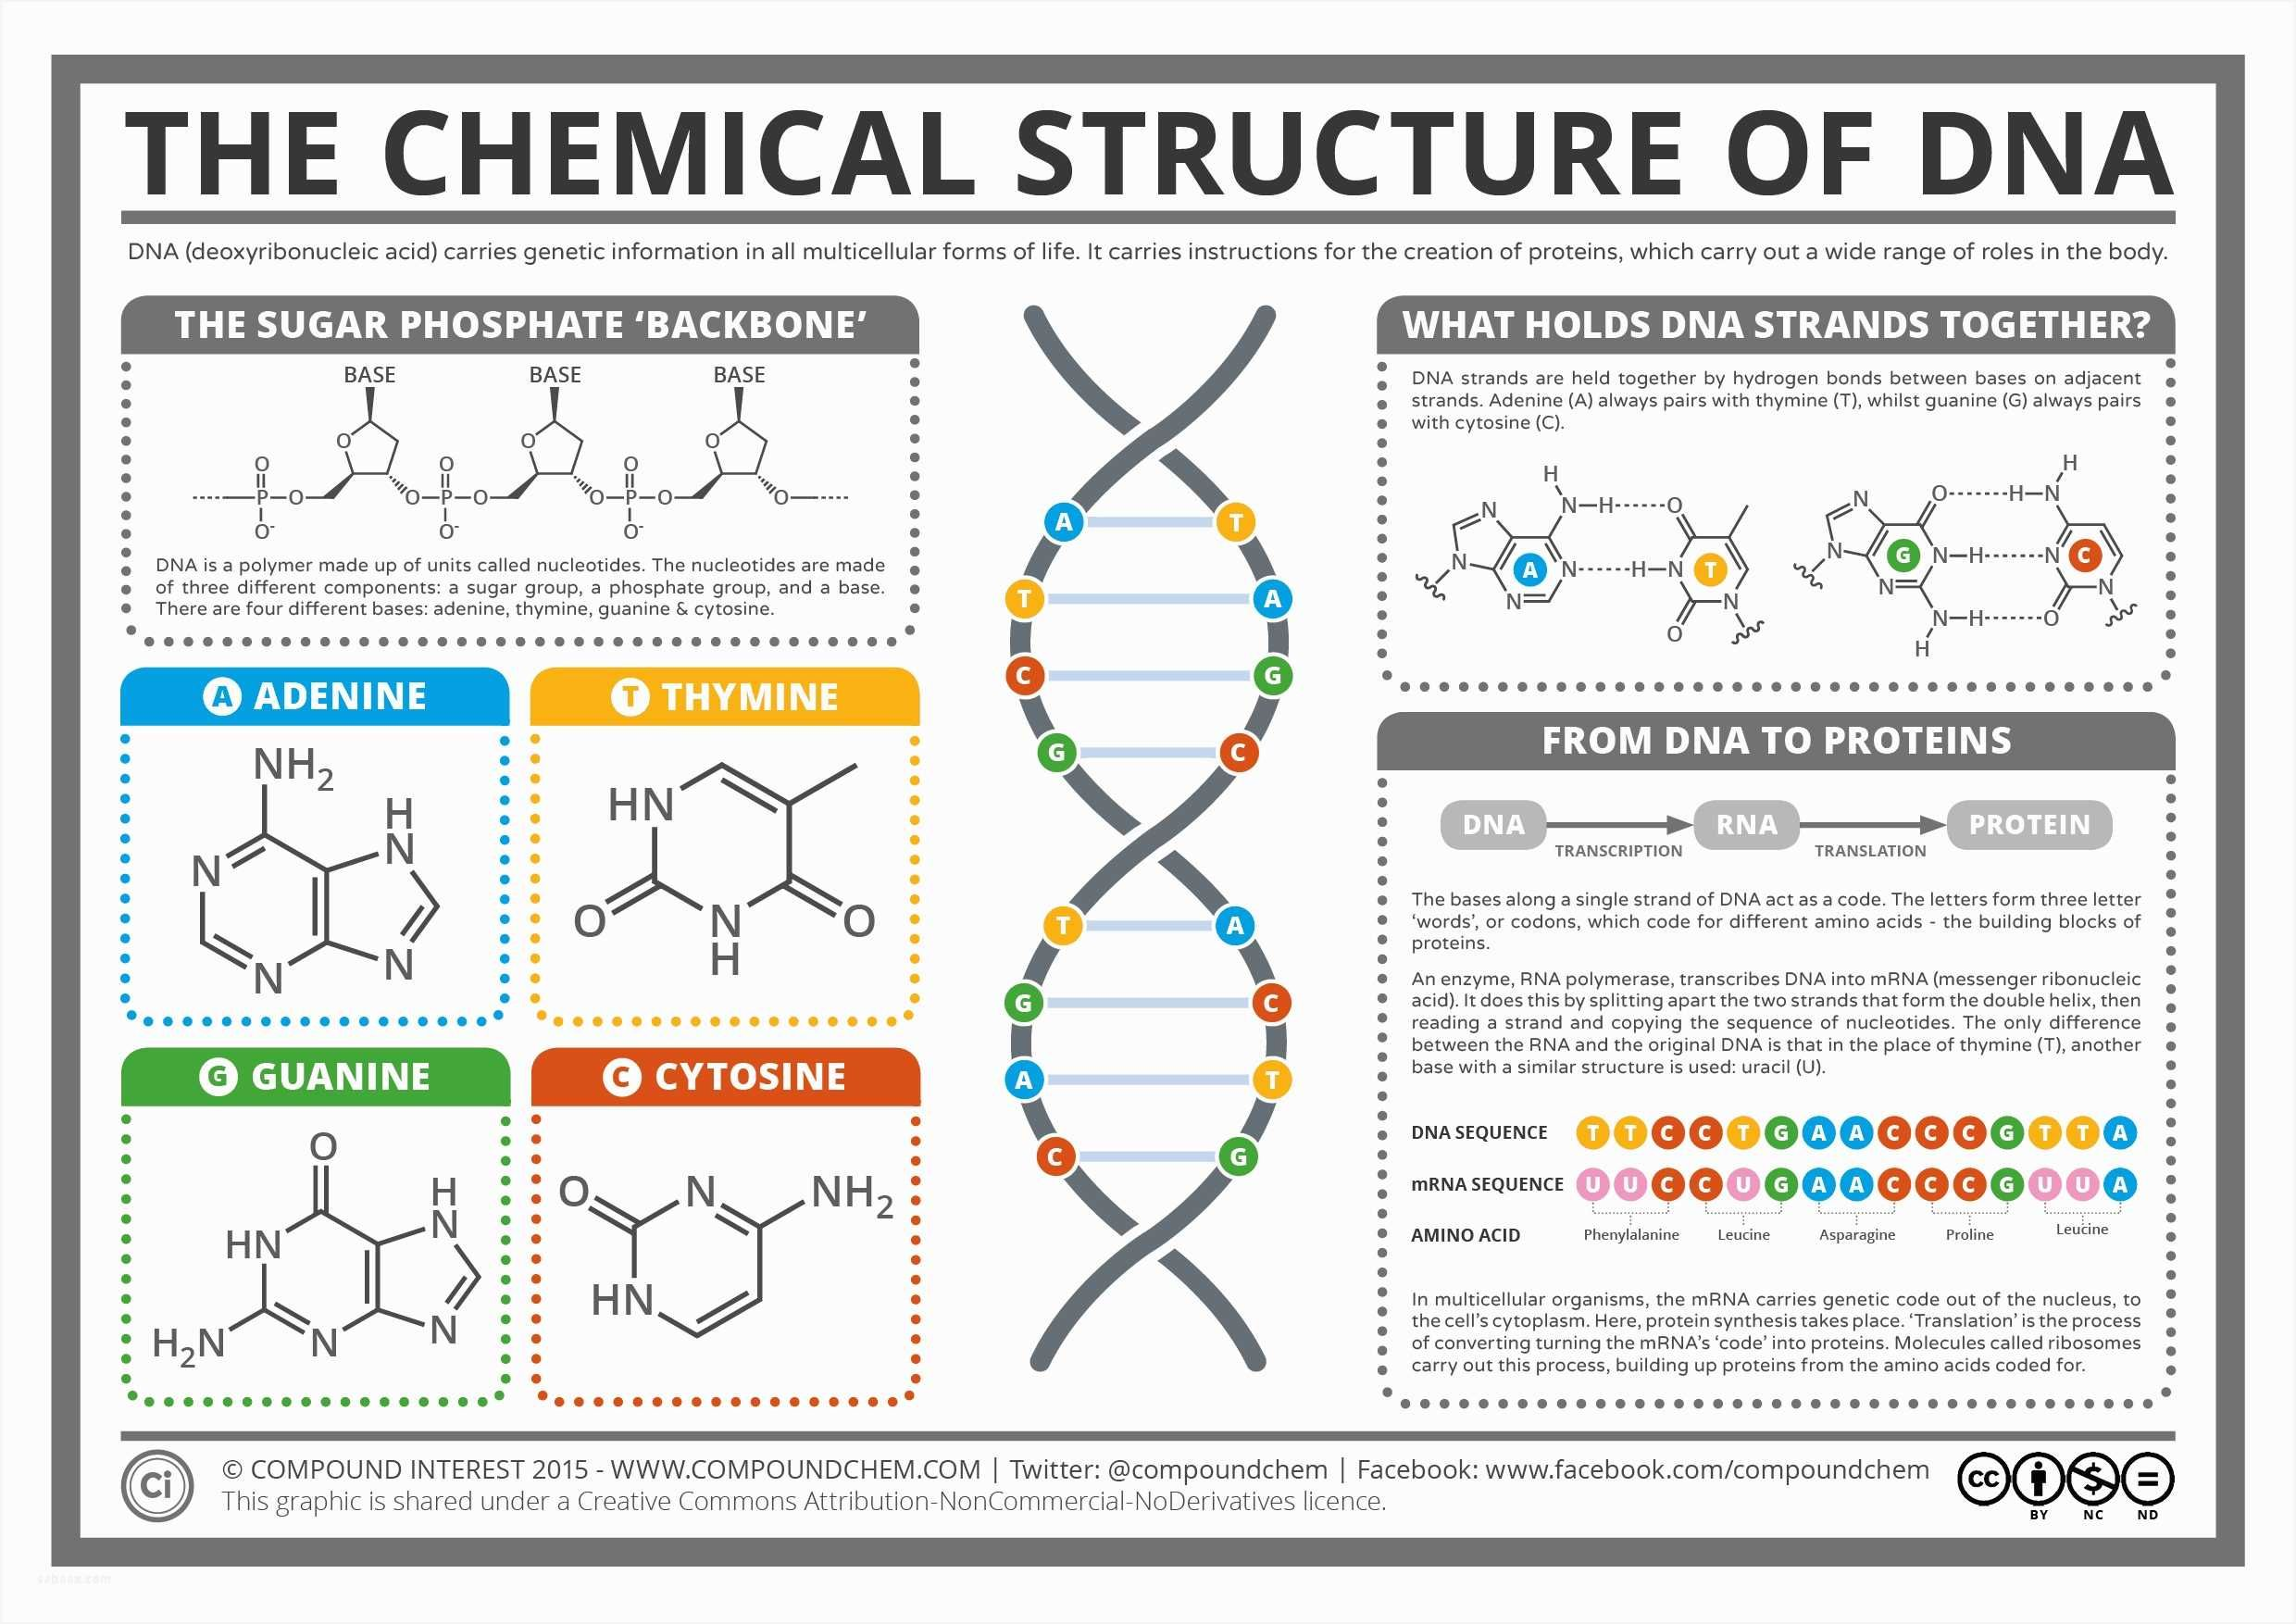 Dna Replication And Rna Transcription Worksheet Answers Or Dna Vs Rna Worksheet Image Collections Worksheet Fo In 2020 Chemical Structure Biochemistry Teaching Biology